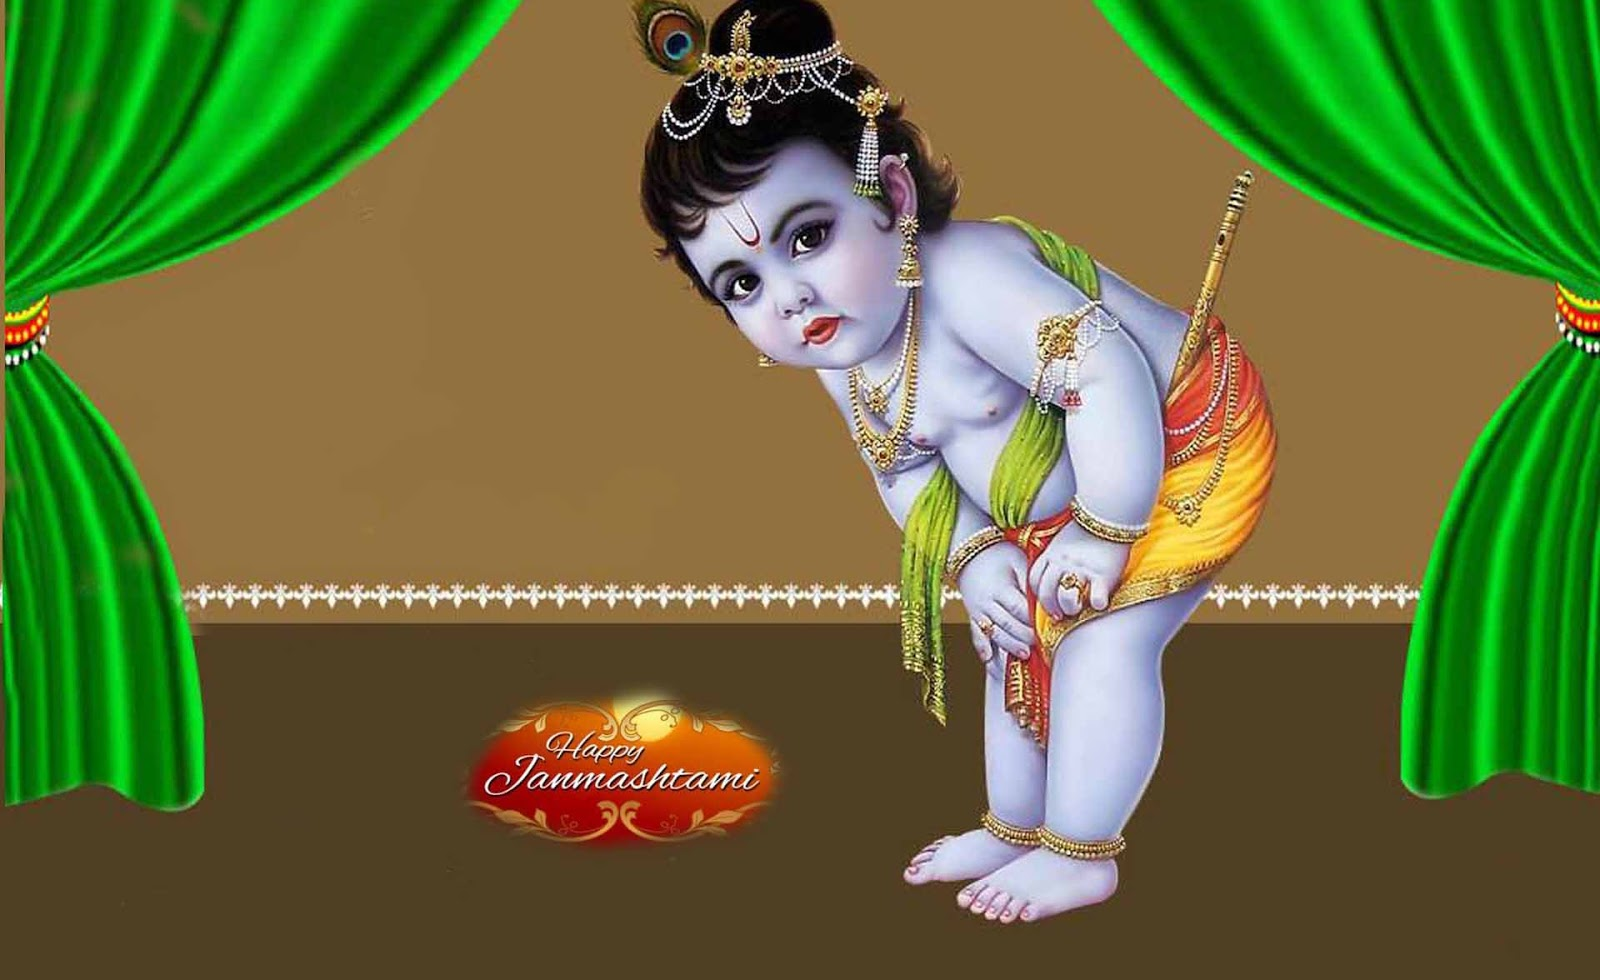 Great looking happy krishna. 2016 clipart janmashtami